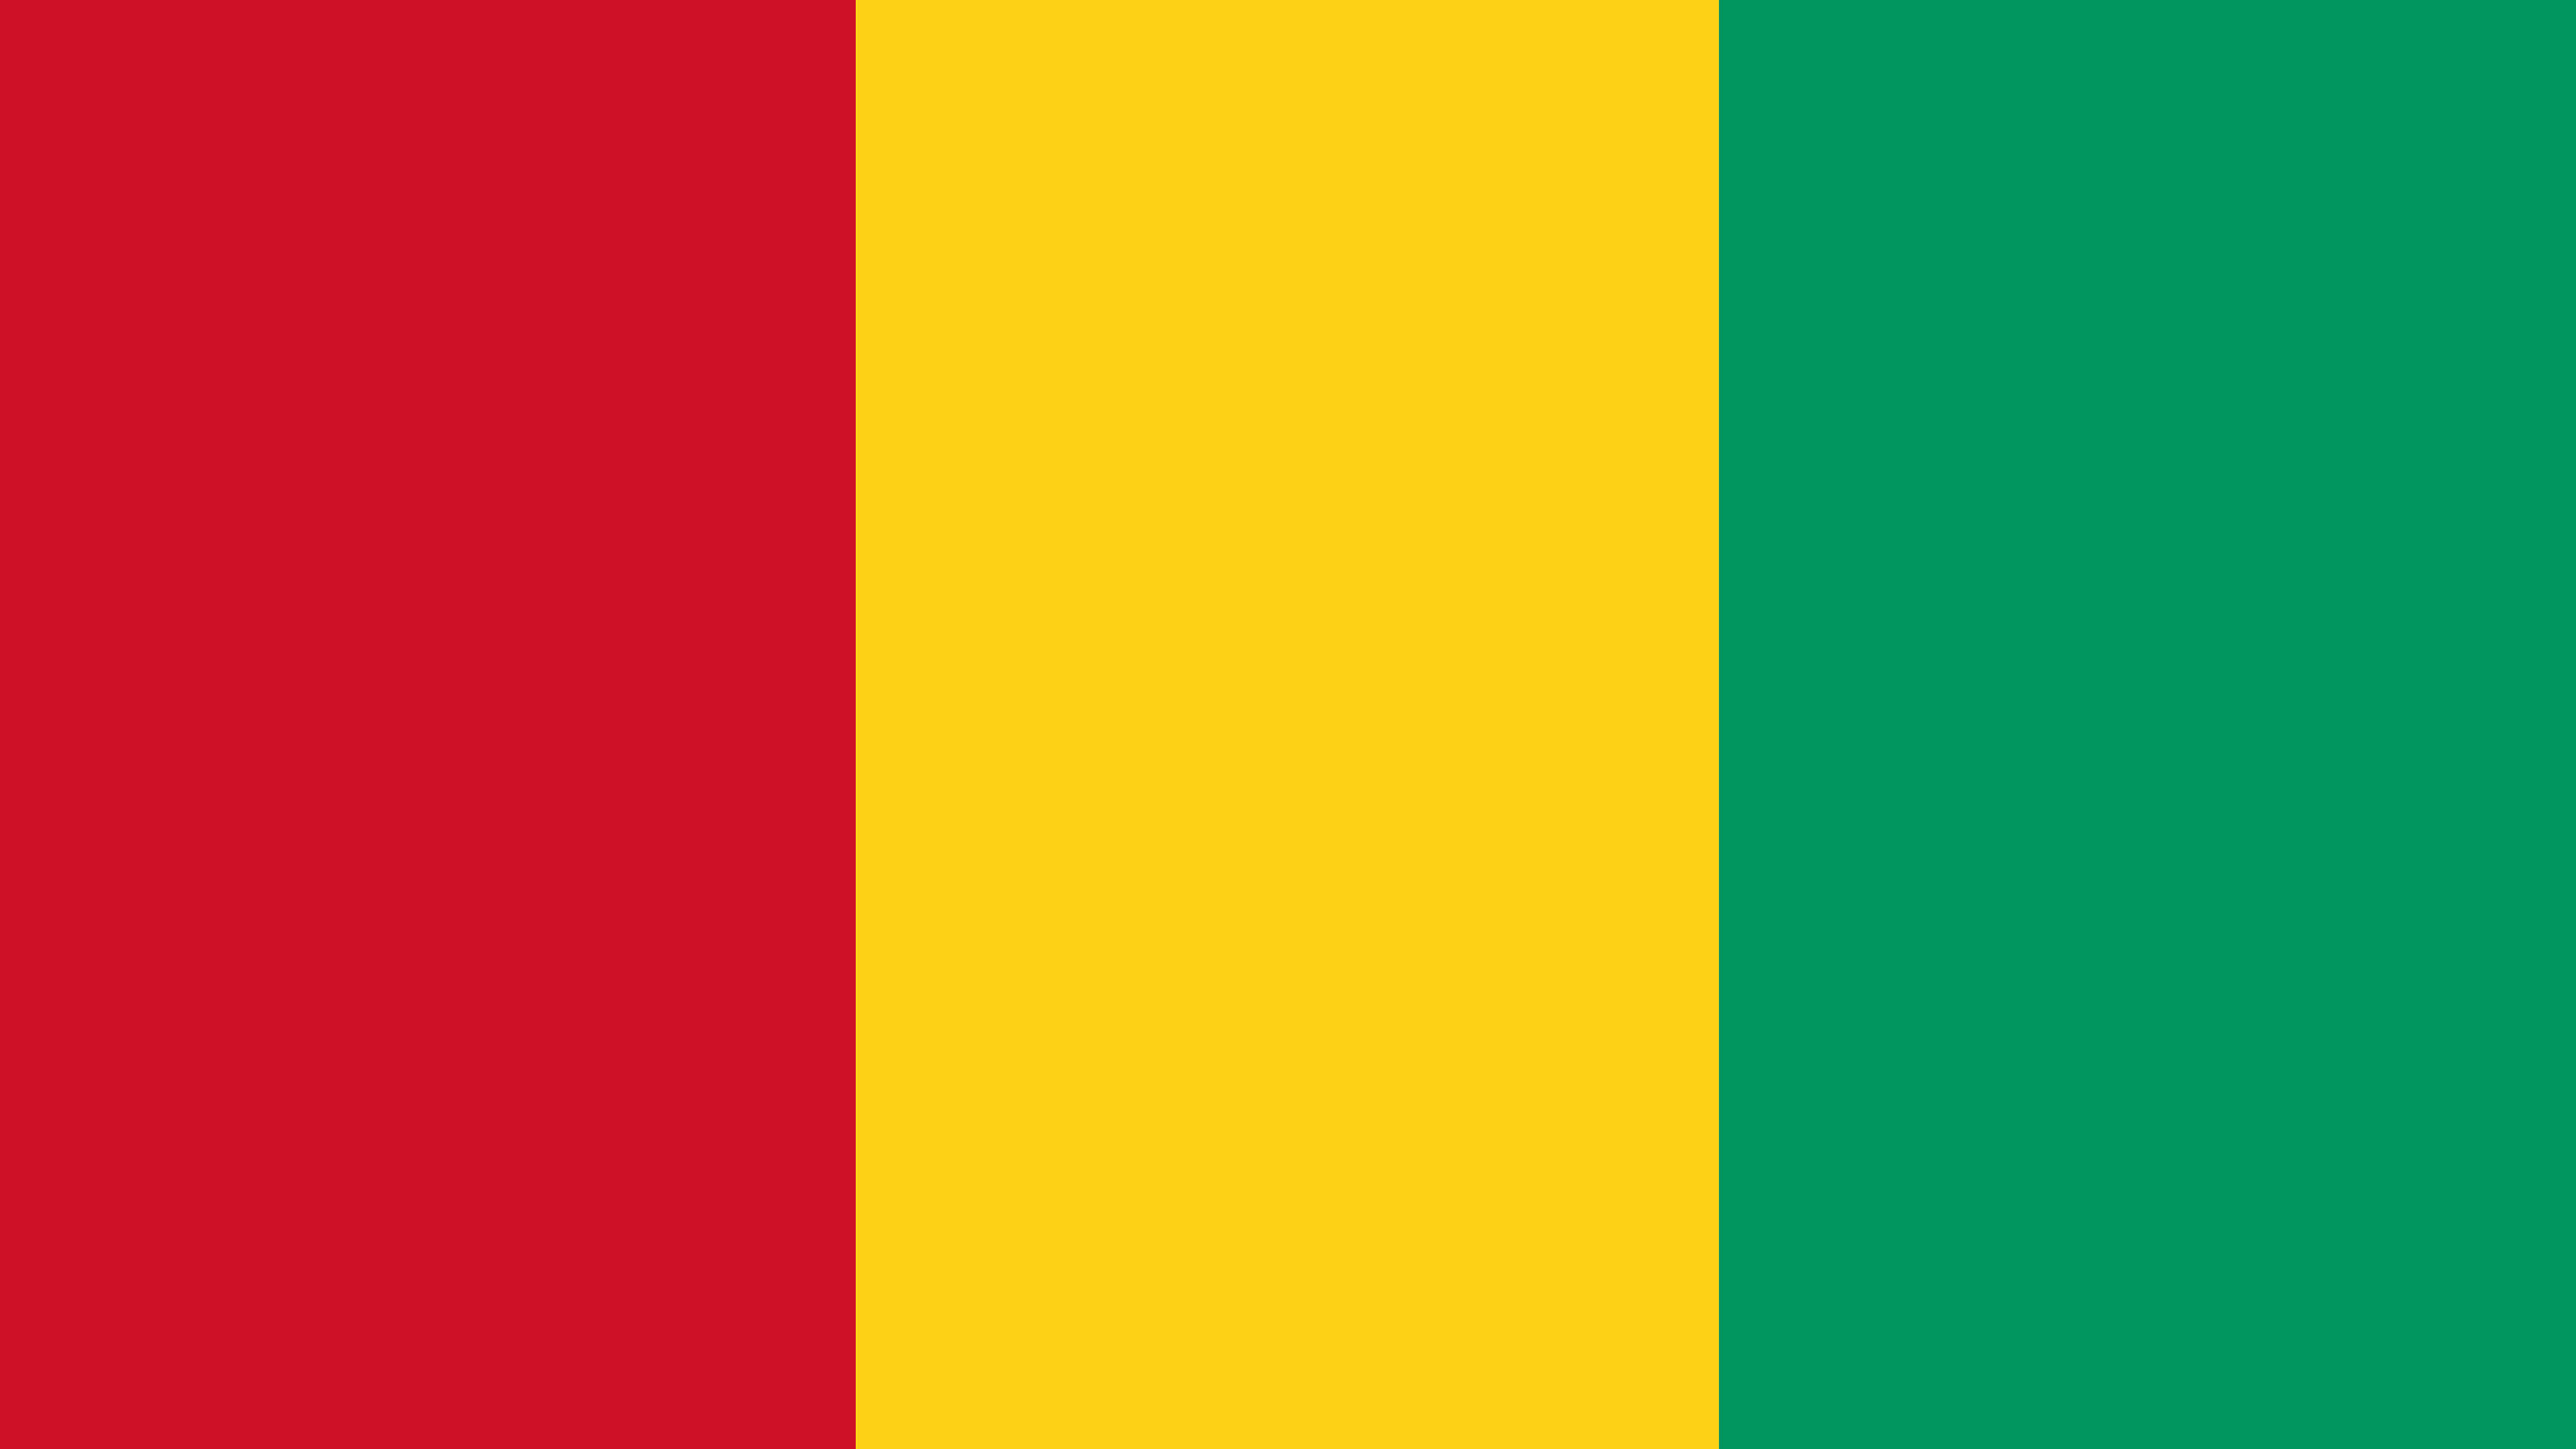 guinea flag uhd 4k wallpaper